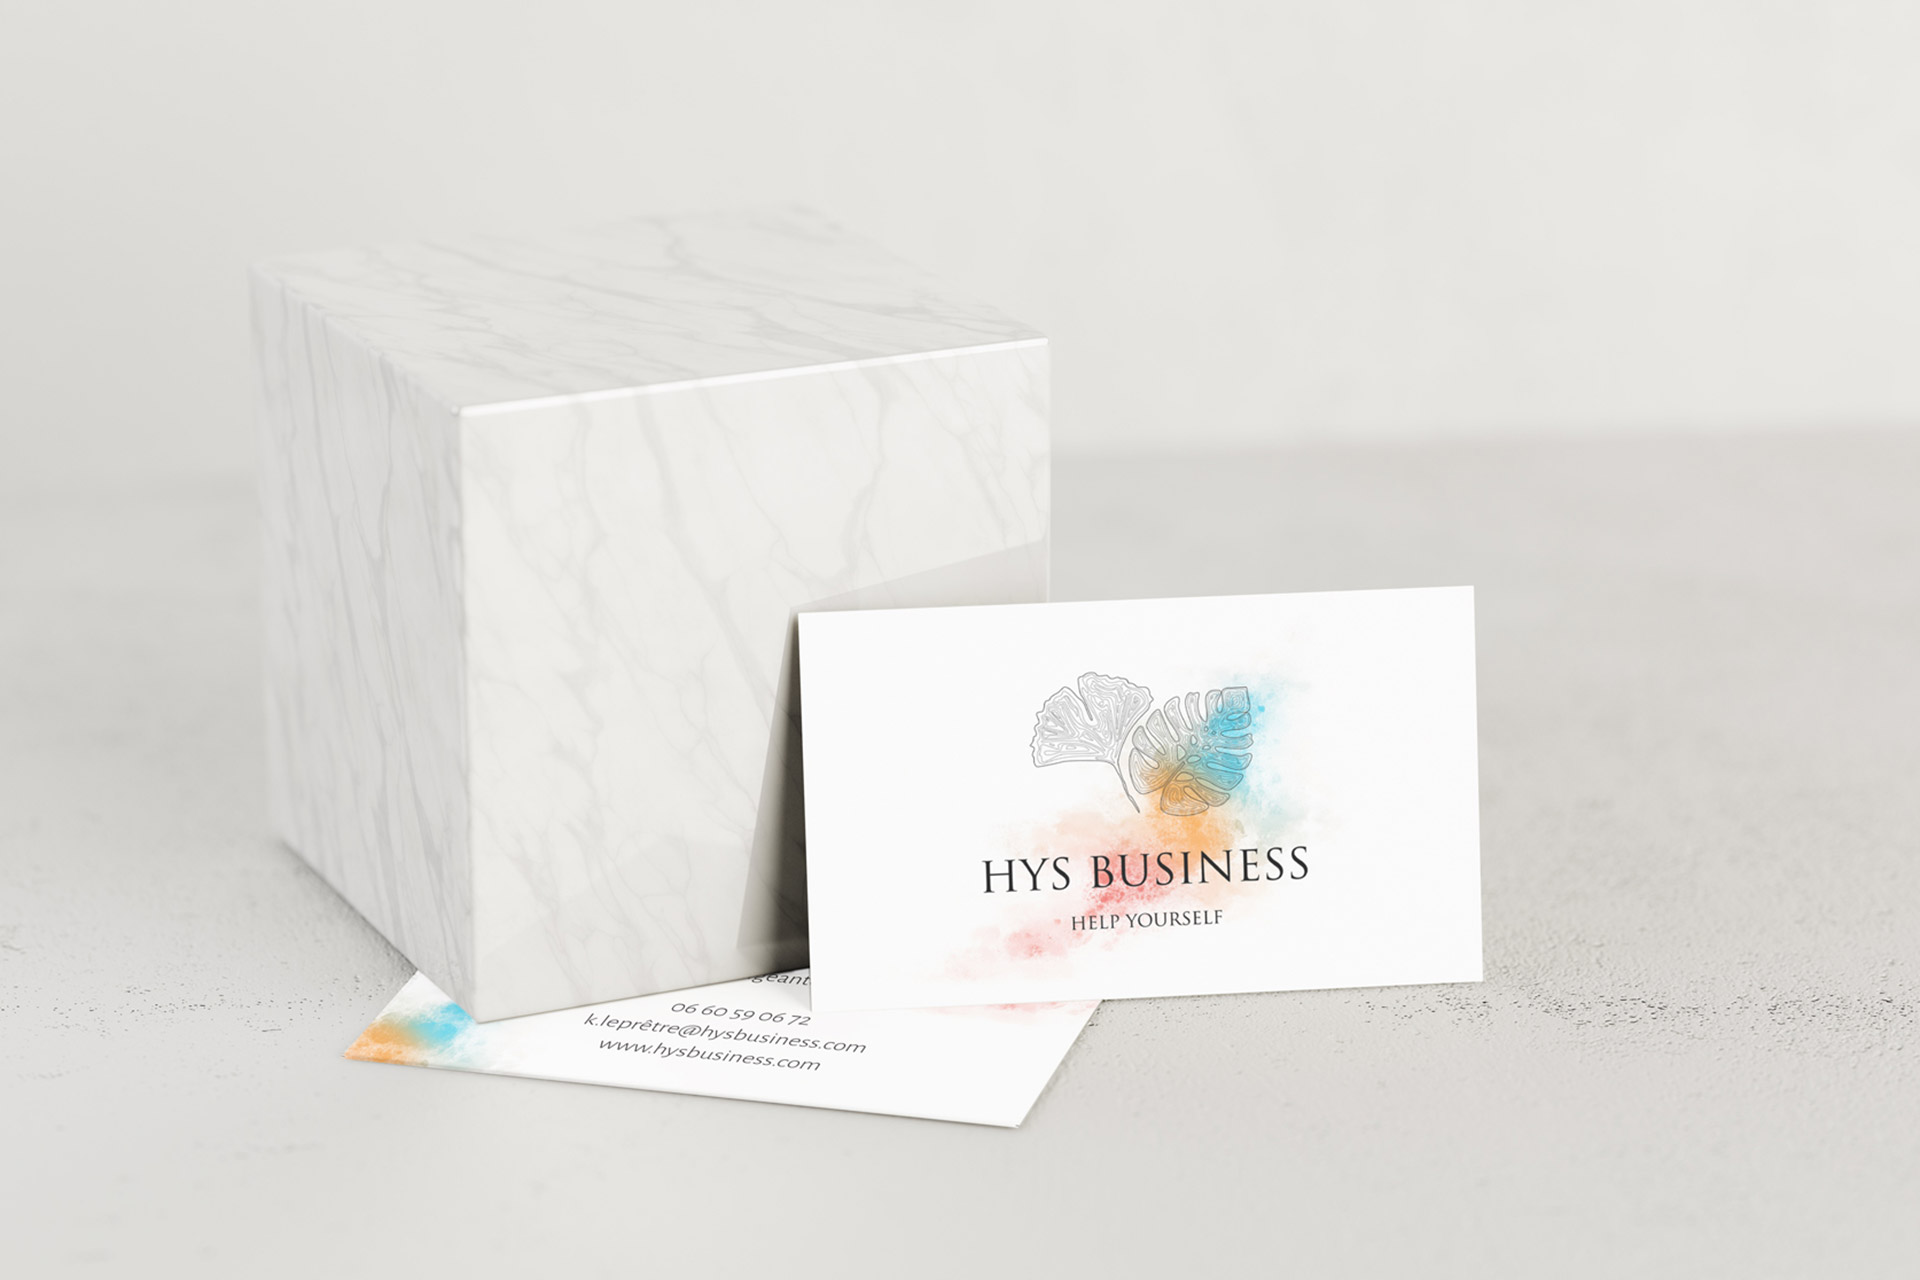 HYS-BUSINESS-CABYNE-STUDIO-cover